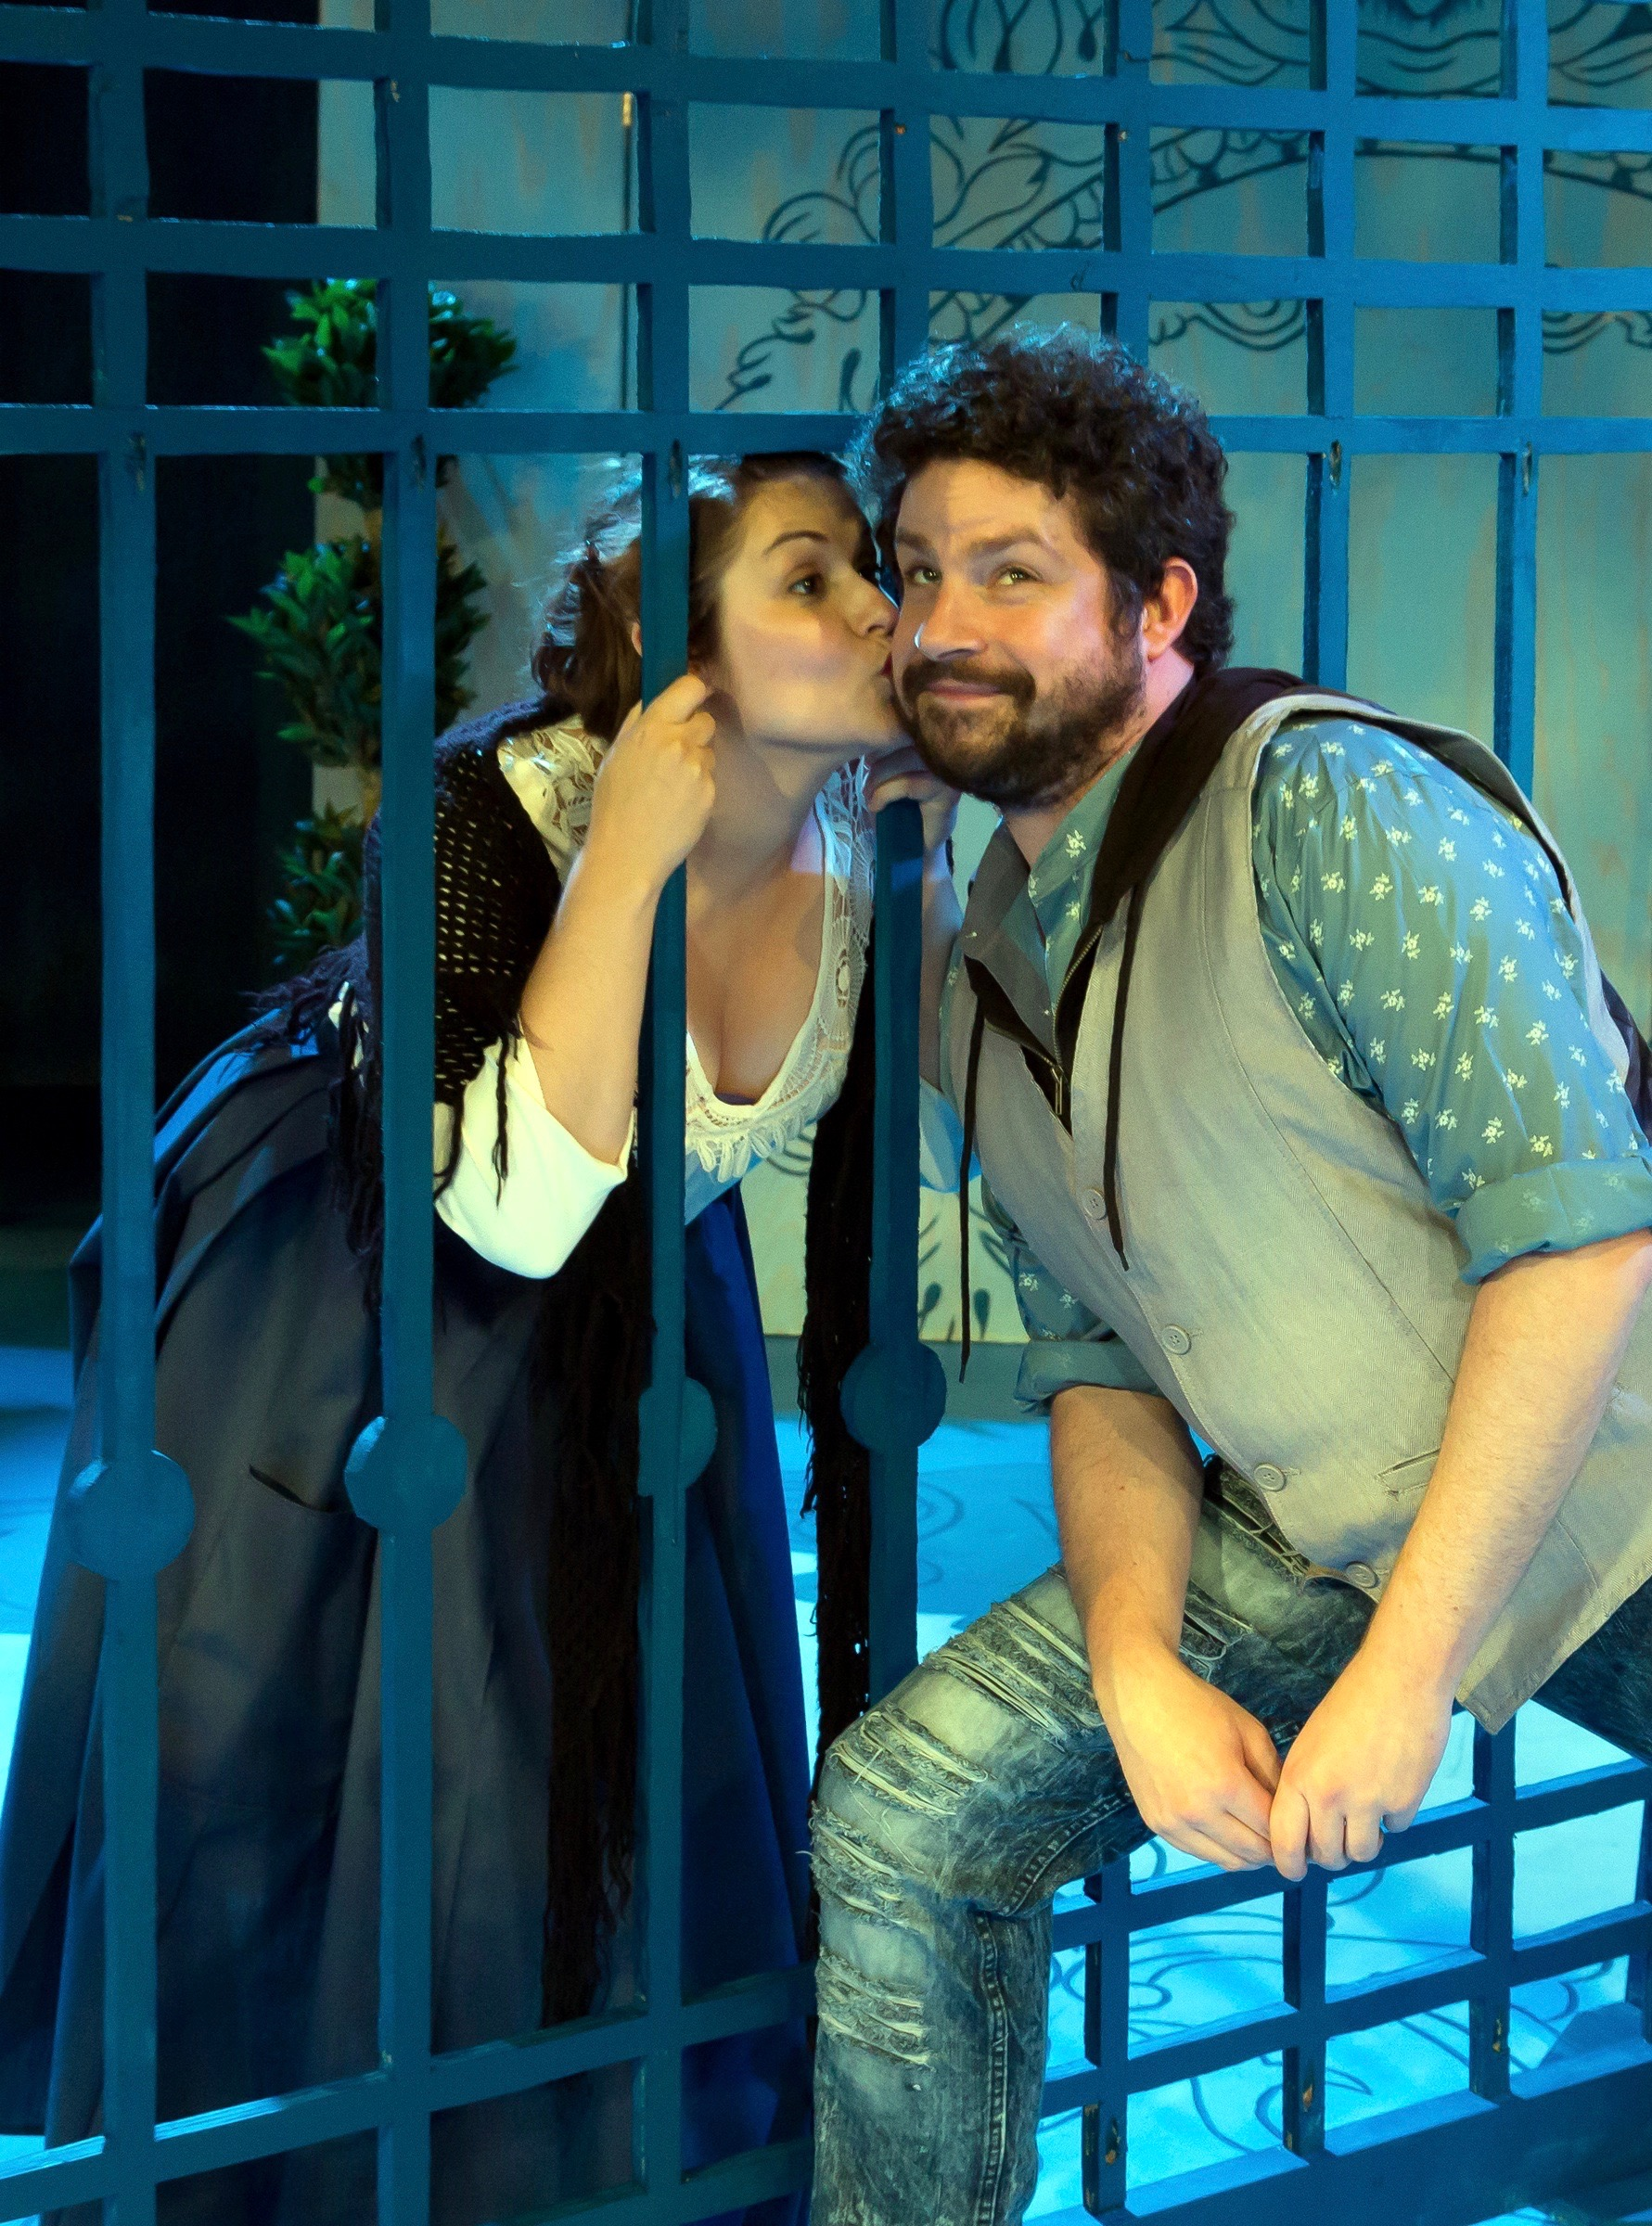 Isabelle (Julianne Avolio) wears her heart on her lips and Cliton (Patrick Halley) is smitten.